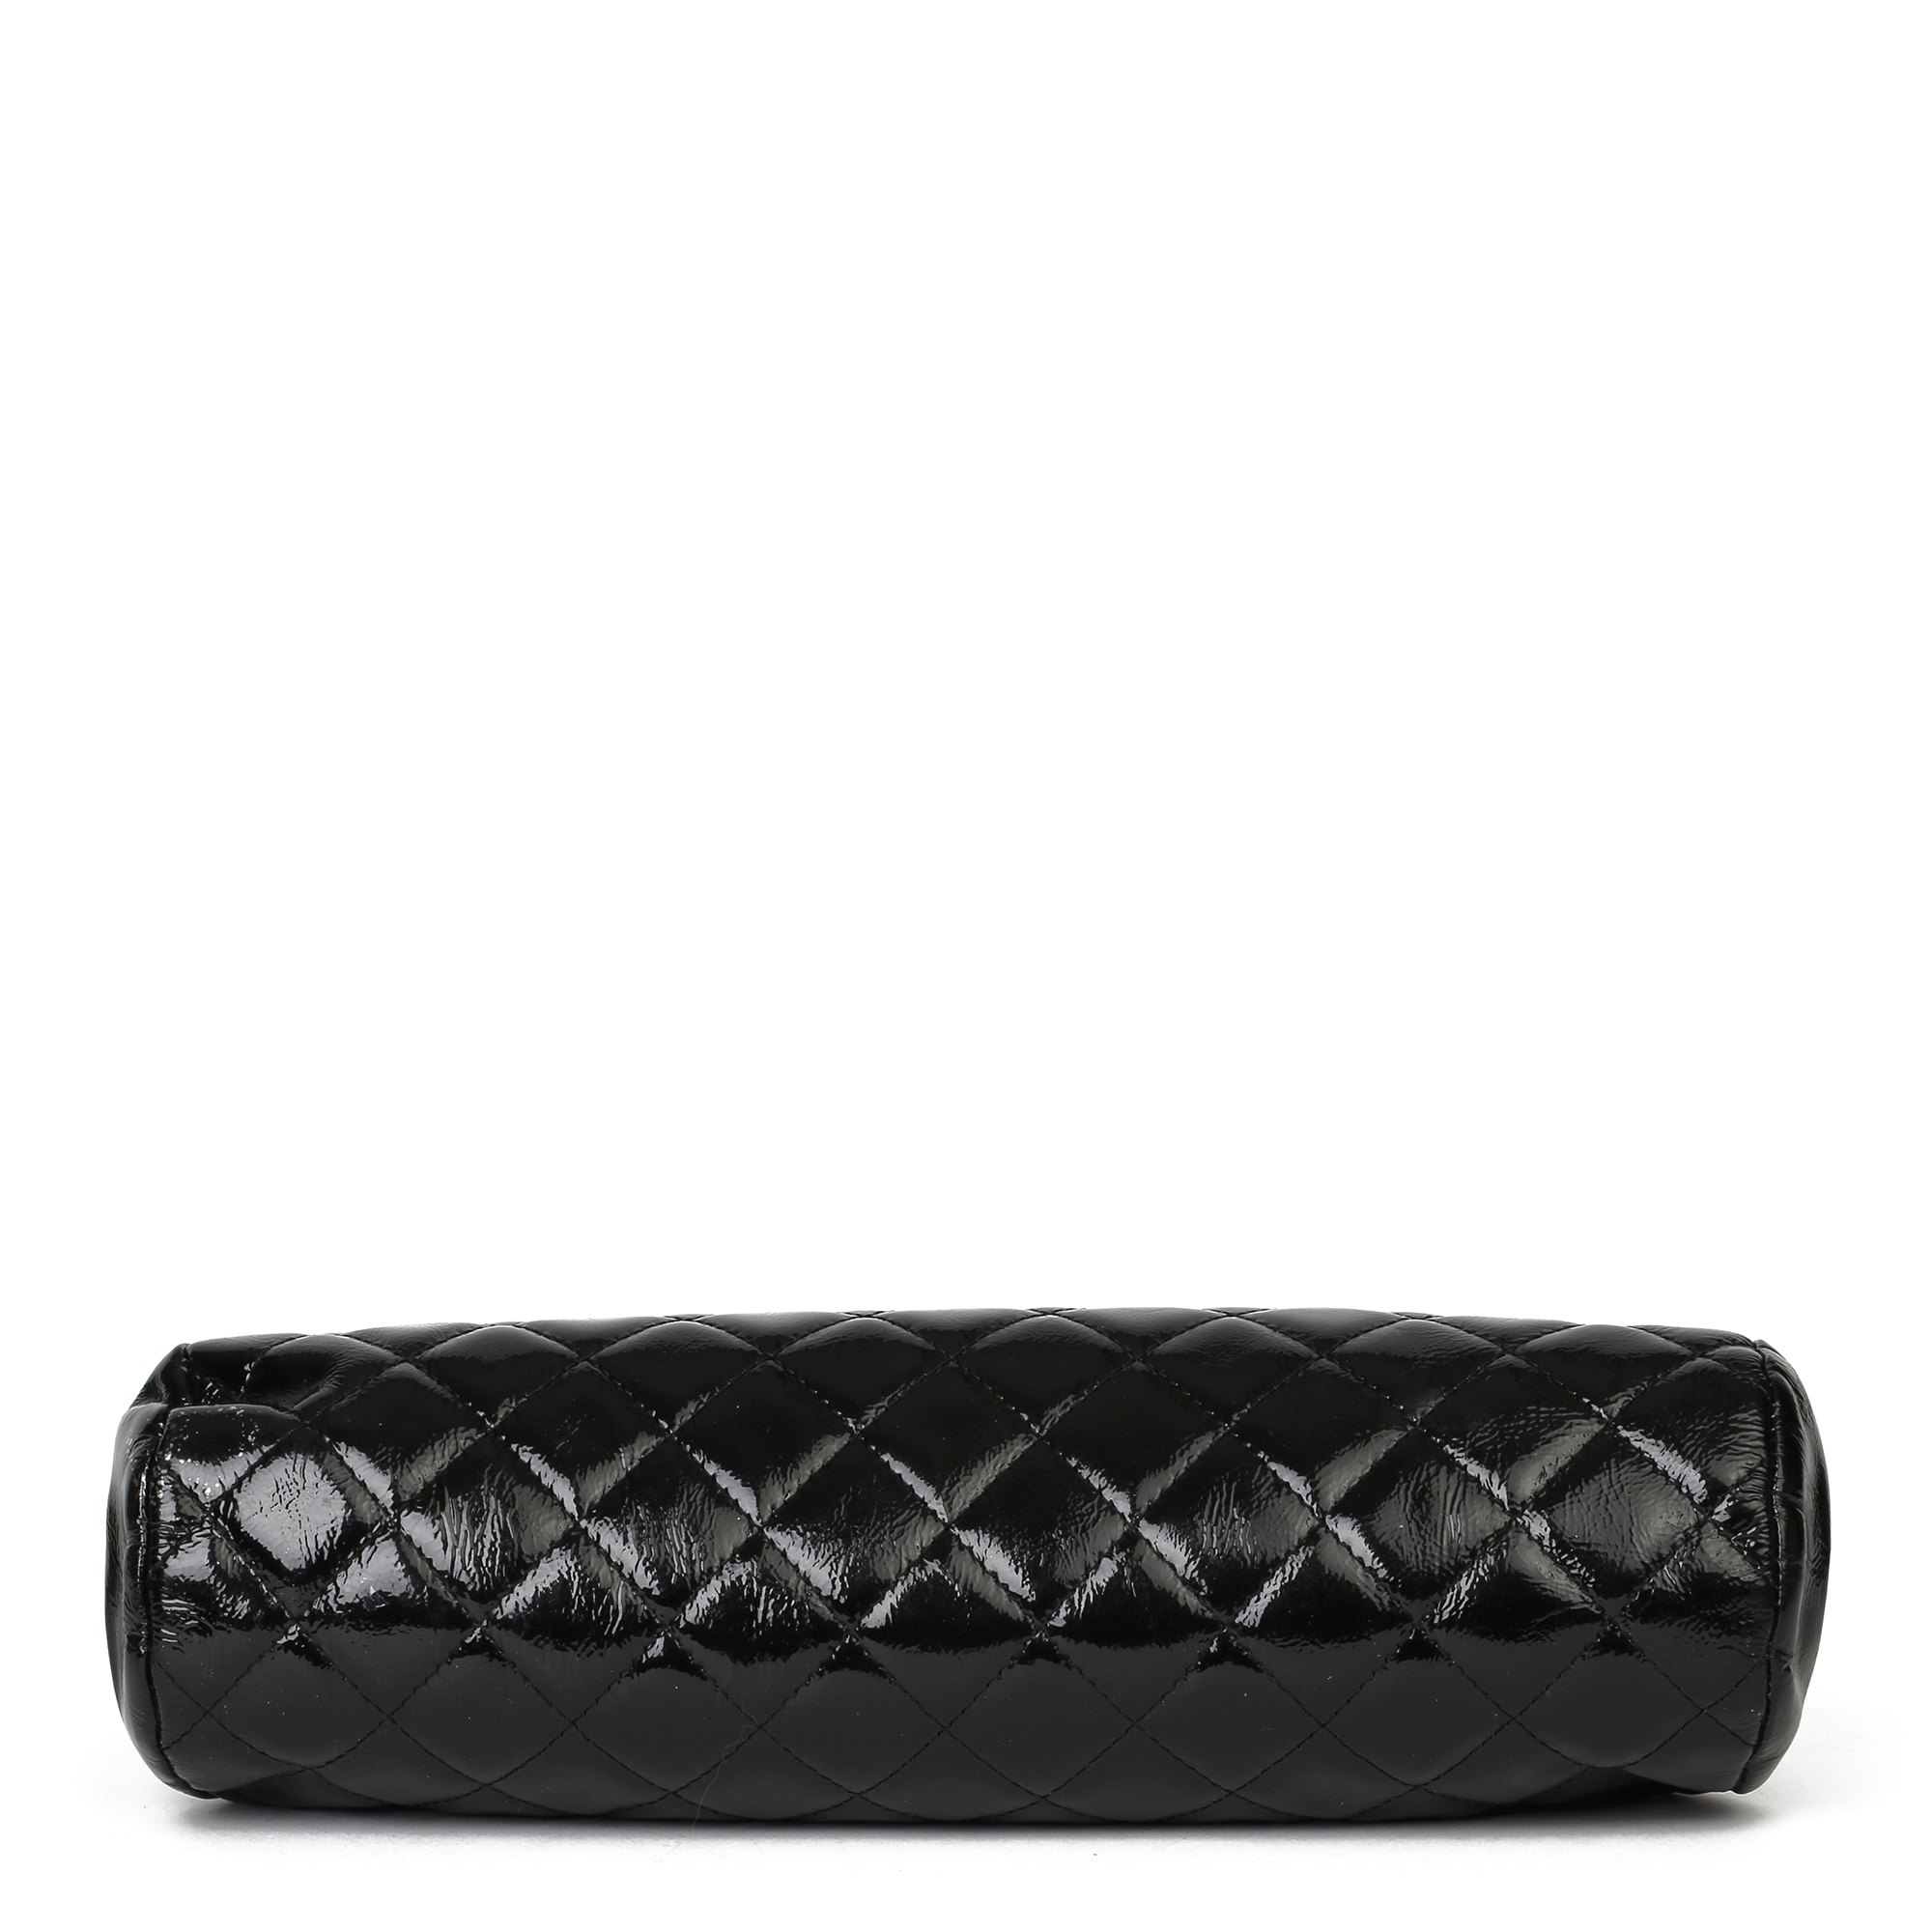 Chanel Black Quilted Aged Patent Leather Timeless Clutch